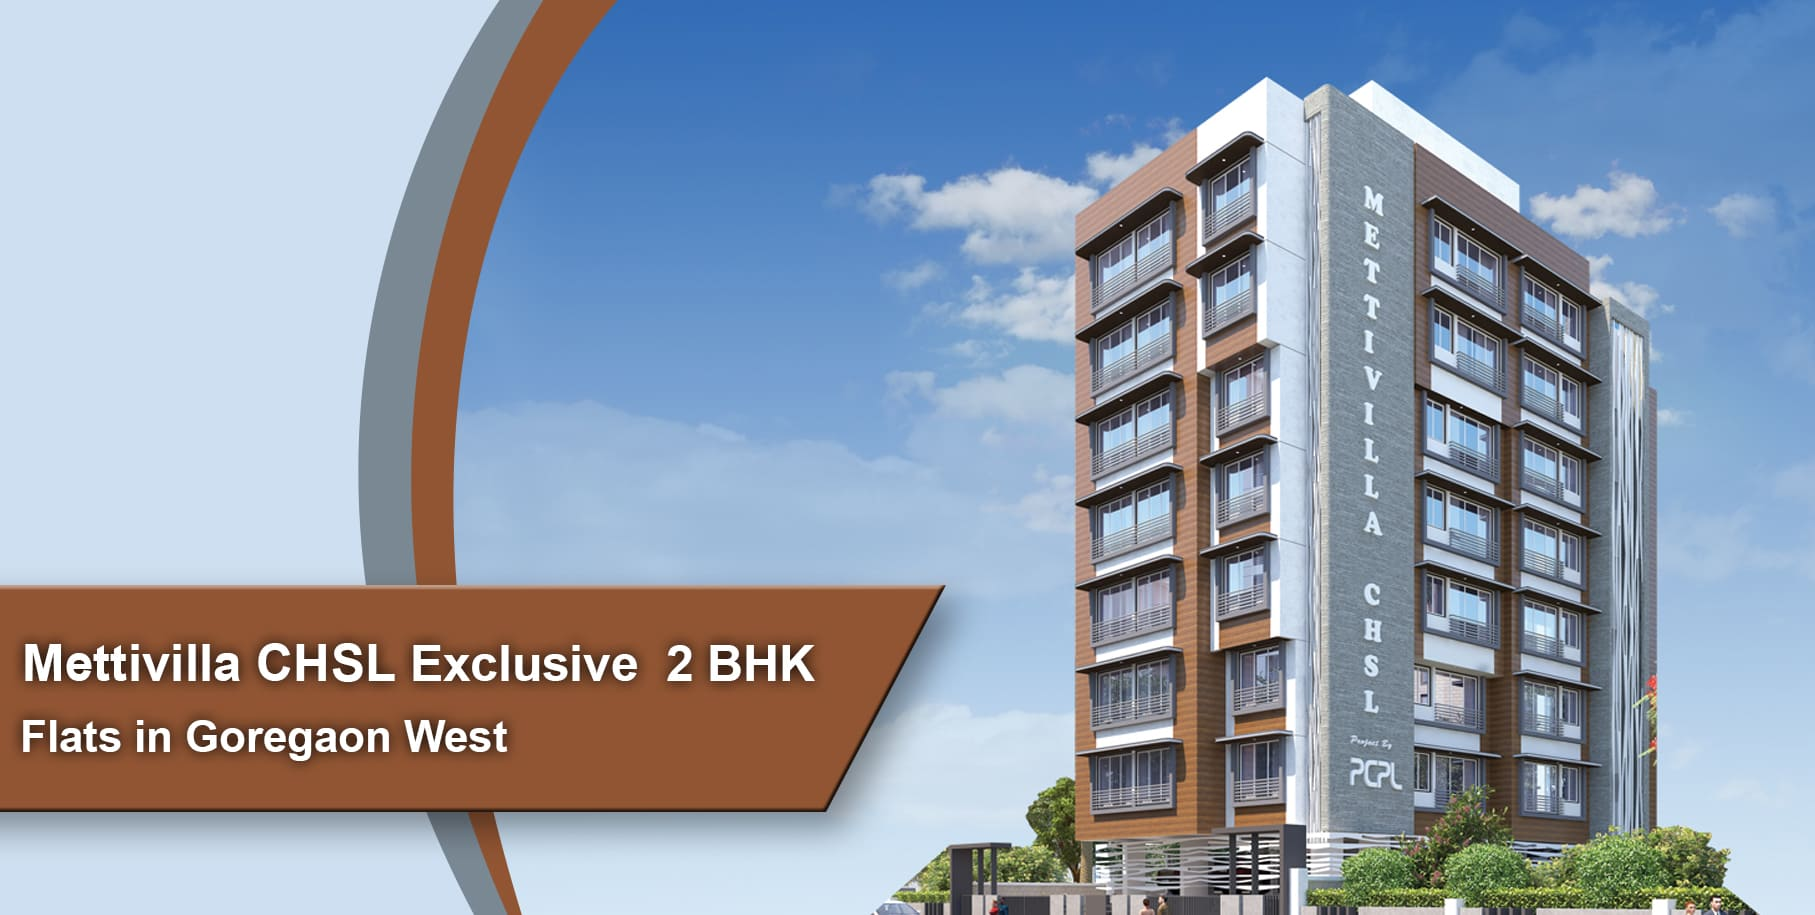 Mettivilla CHSL – Exclusive 2 BHK Flats in Goregaon West